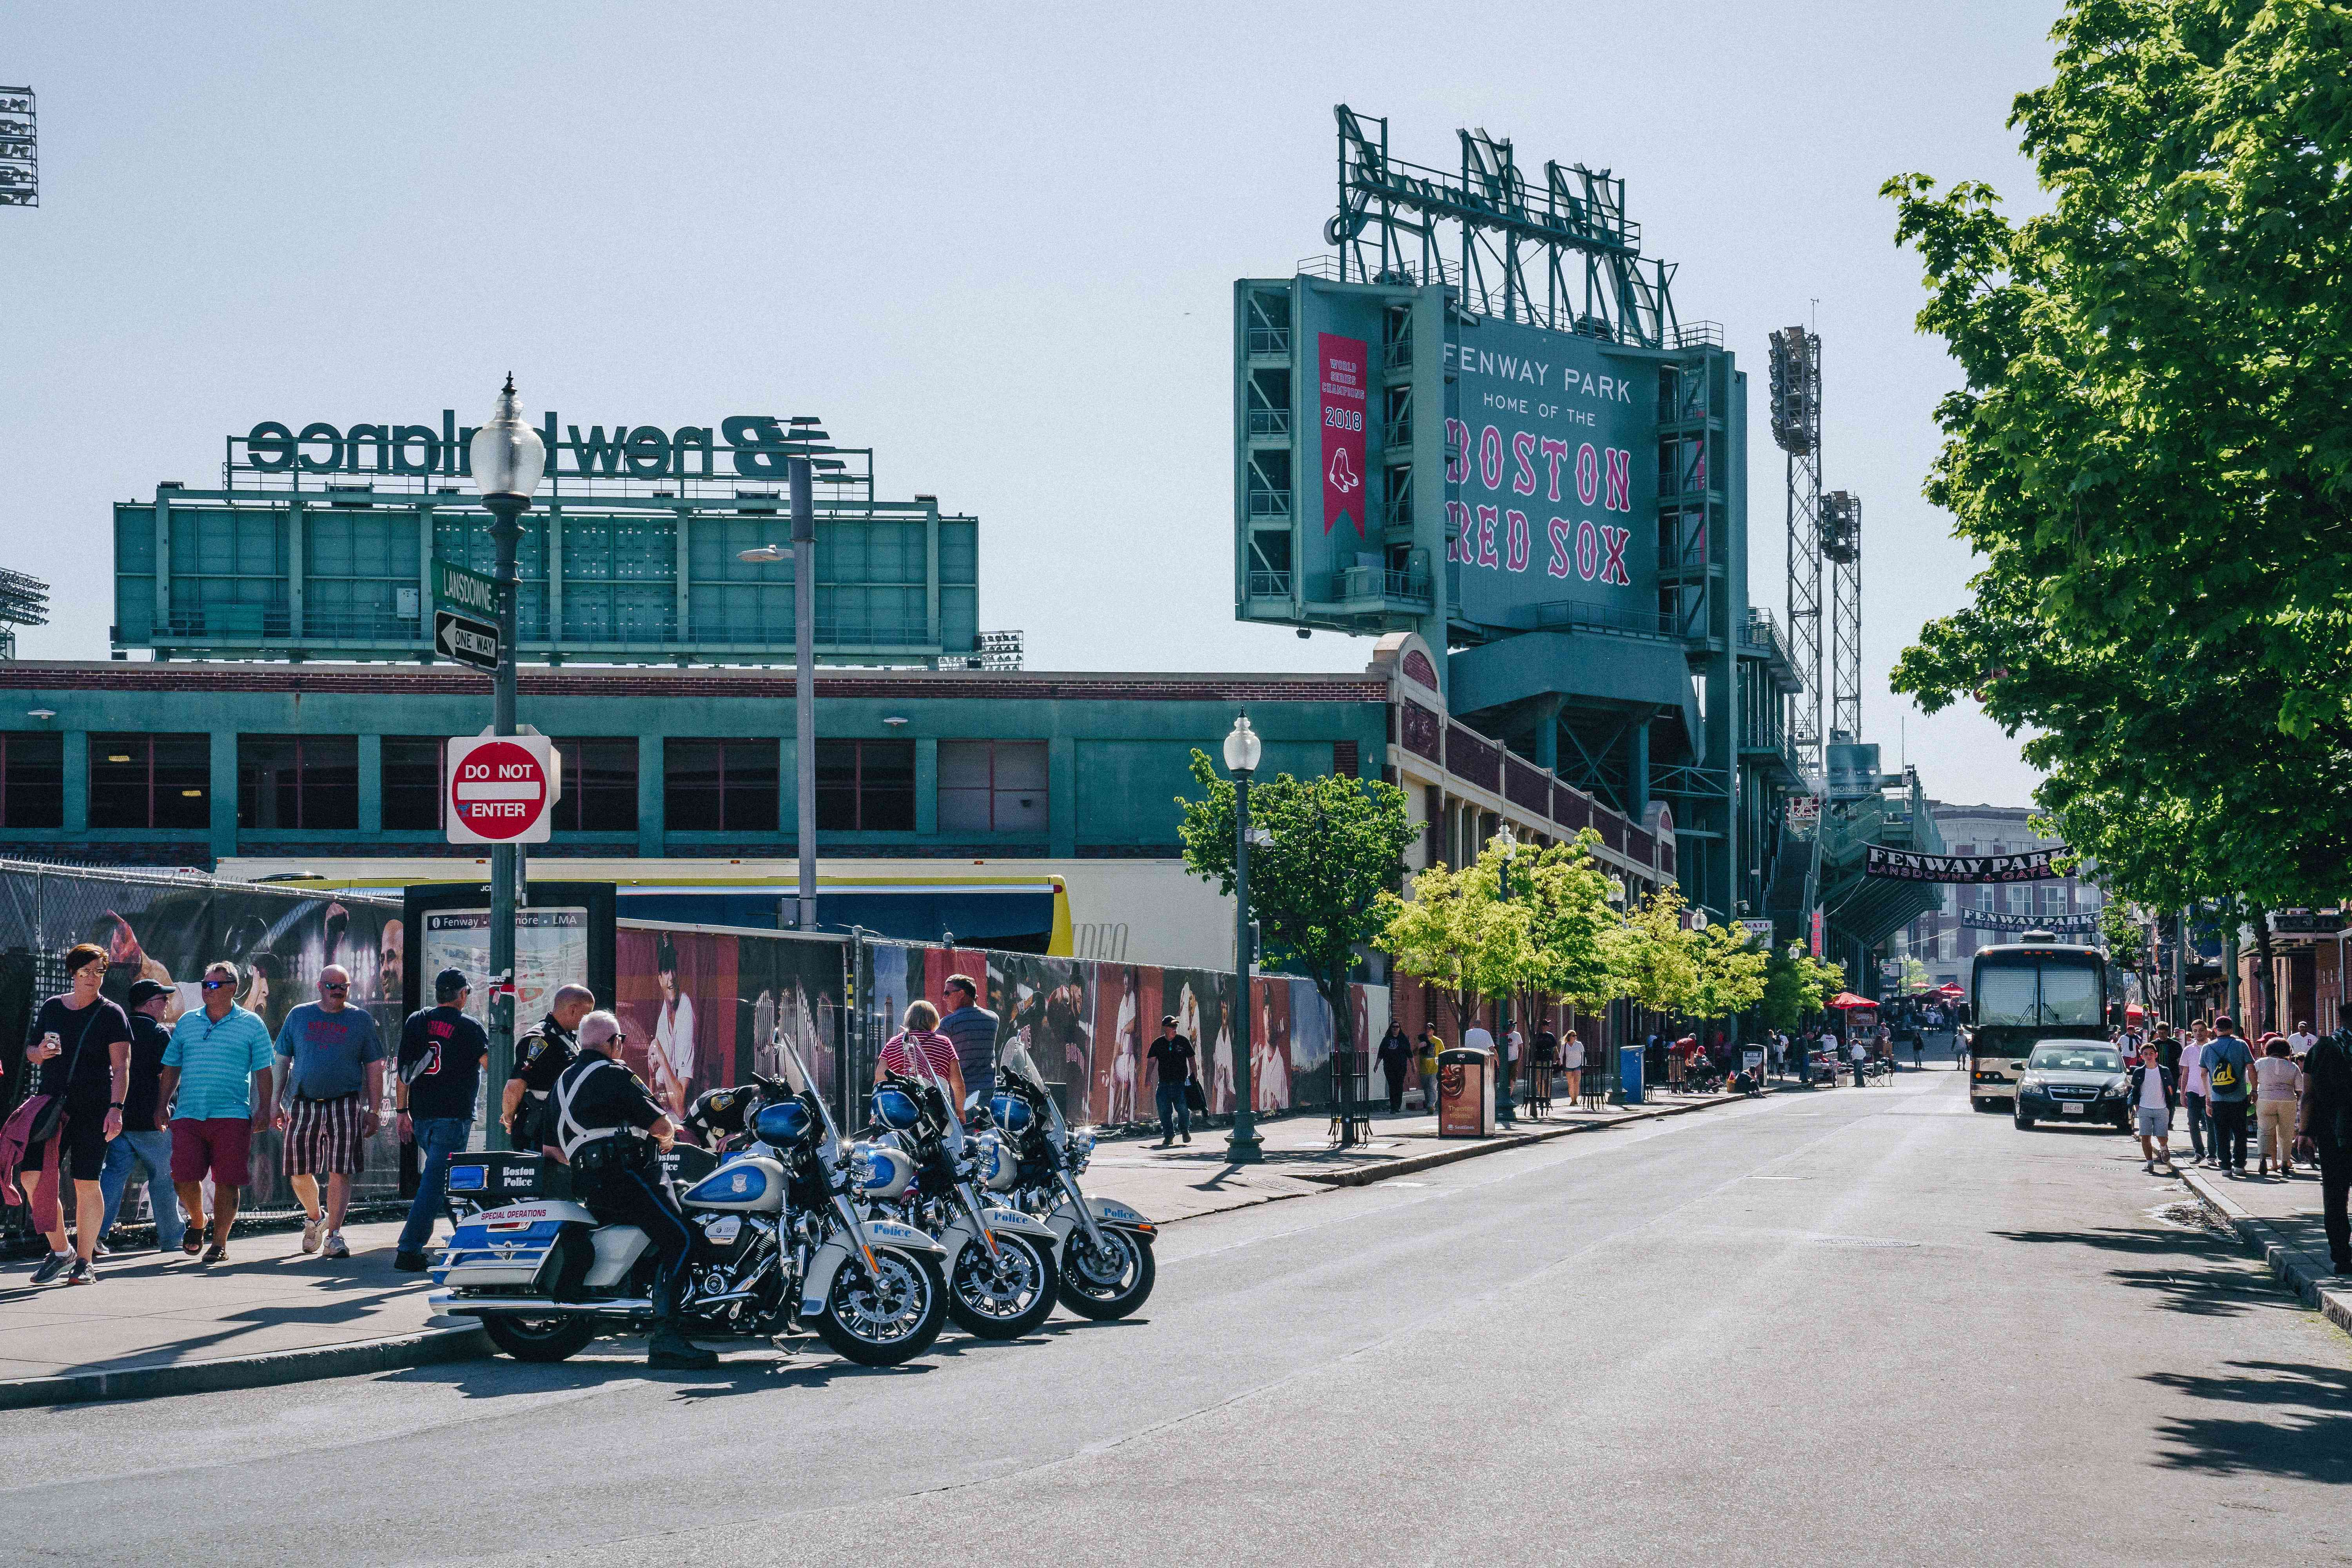 Street leading up to the entrance of Fenway Park